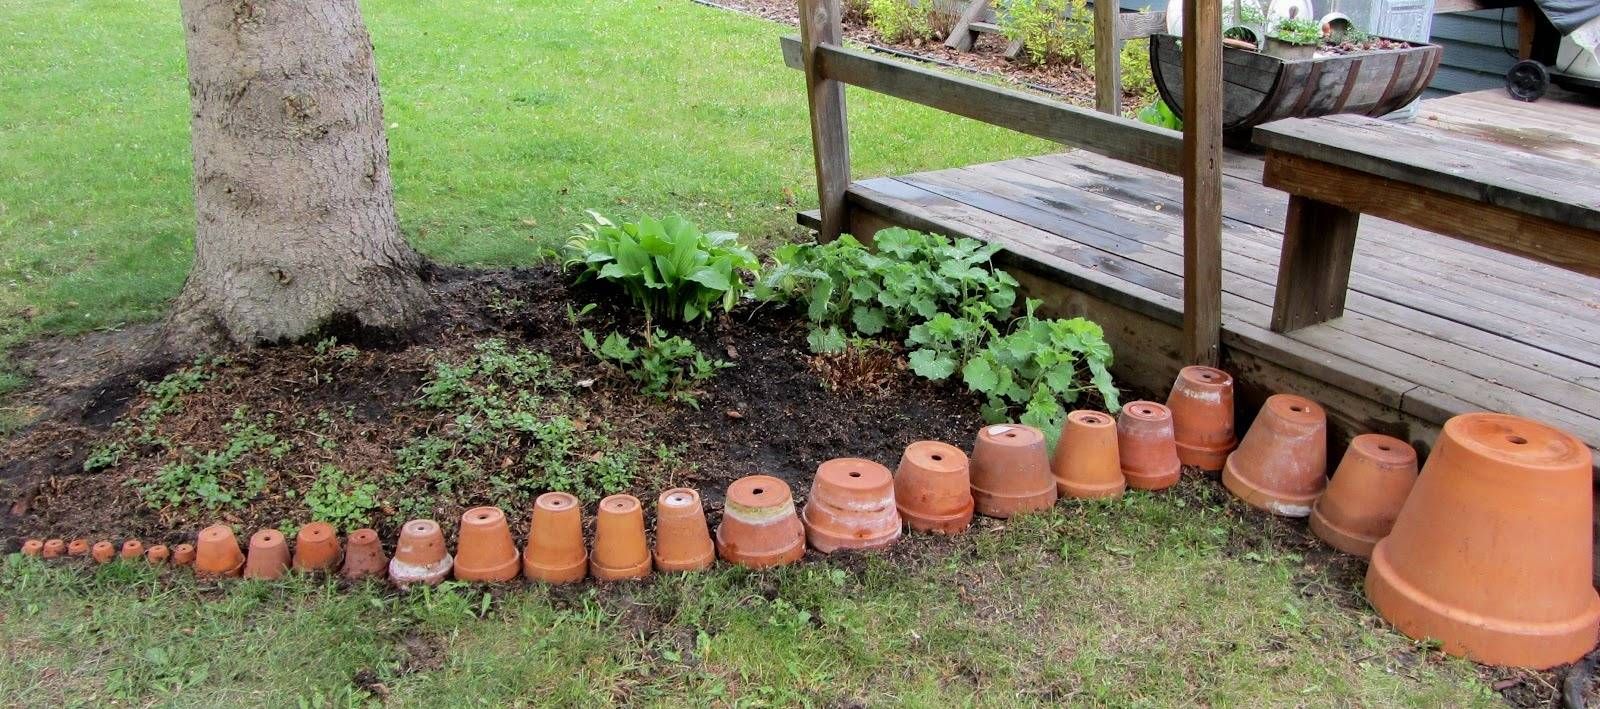 Pots lined from smallest to biggest